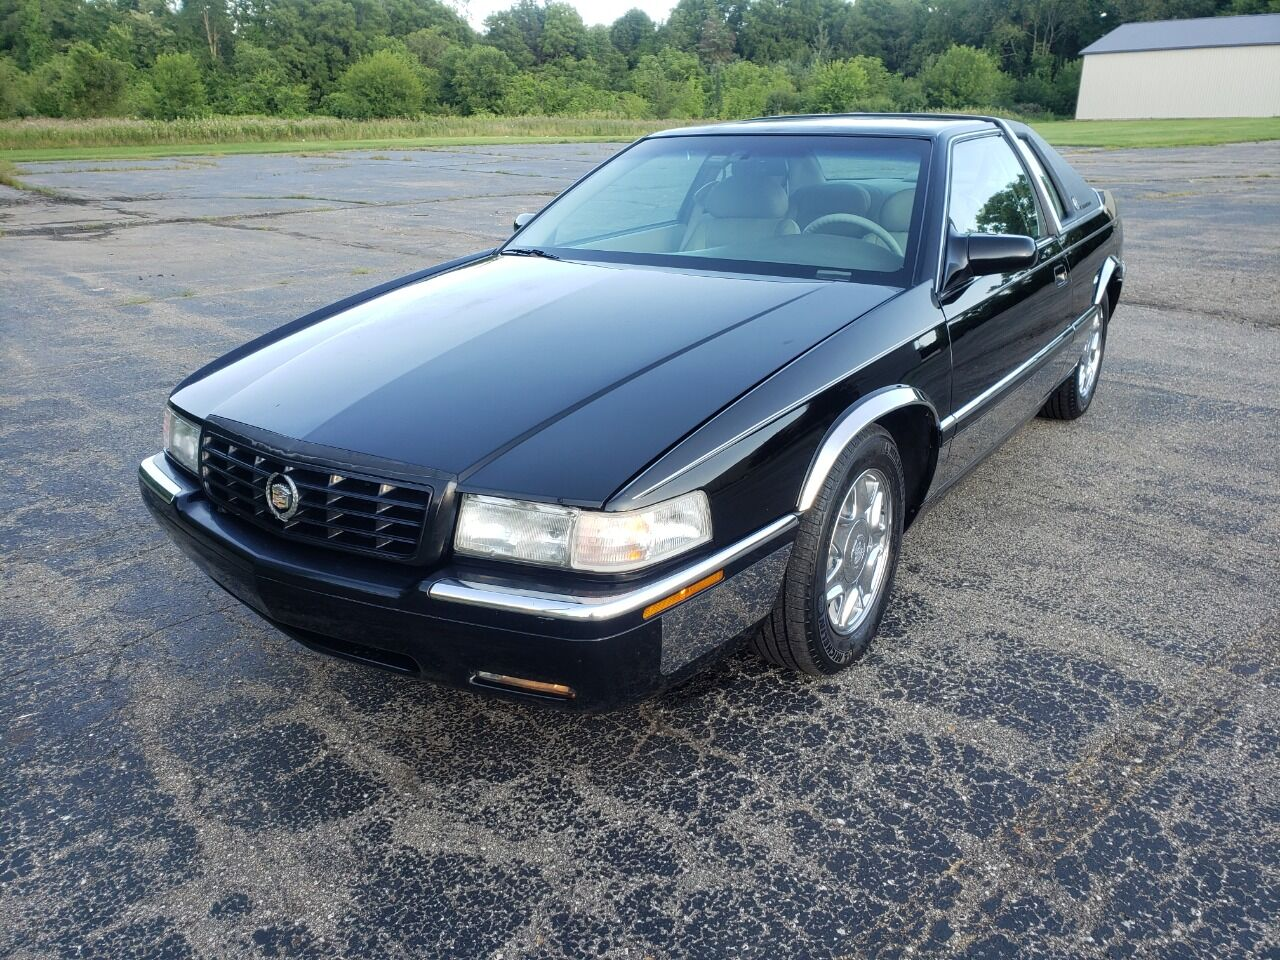 used 1996 cadillac eldorado for sale carsforsale com used 1996 cadillac eldorado for sale